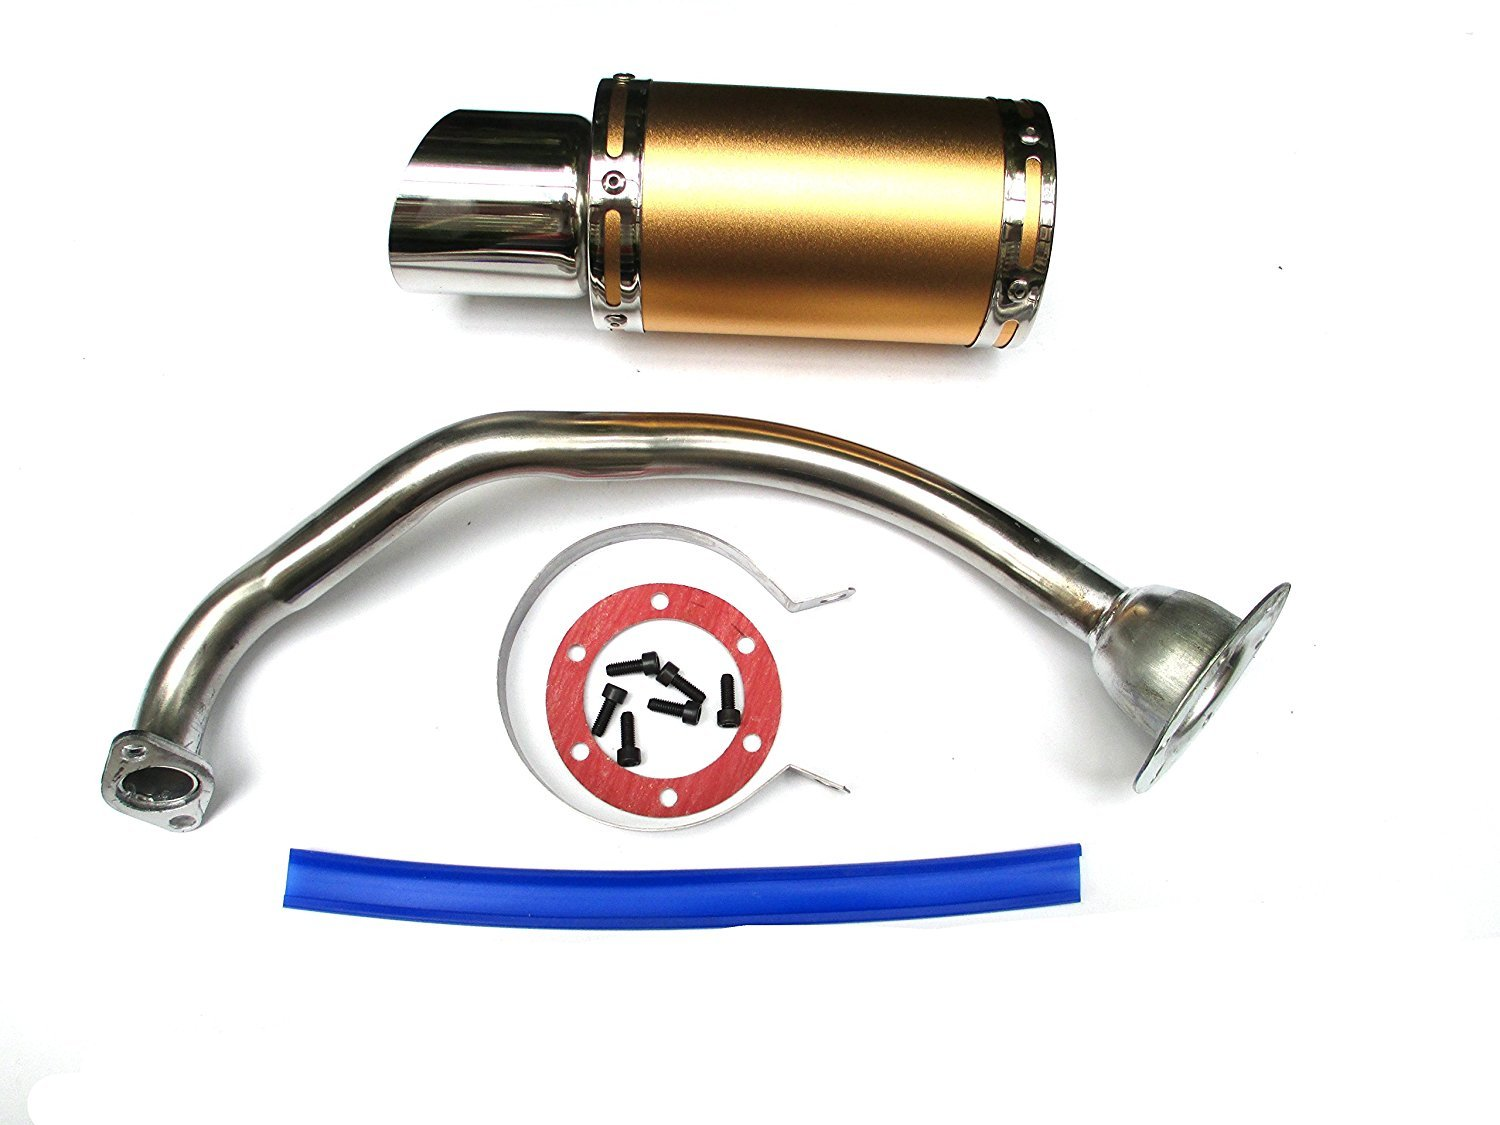 NEW! High Performance Exhaust System Muffler for GY6 50cc-400cc 4 Stroke Scooters ATV Go Kart (Gold)